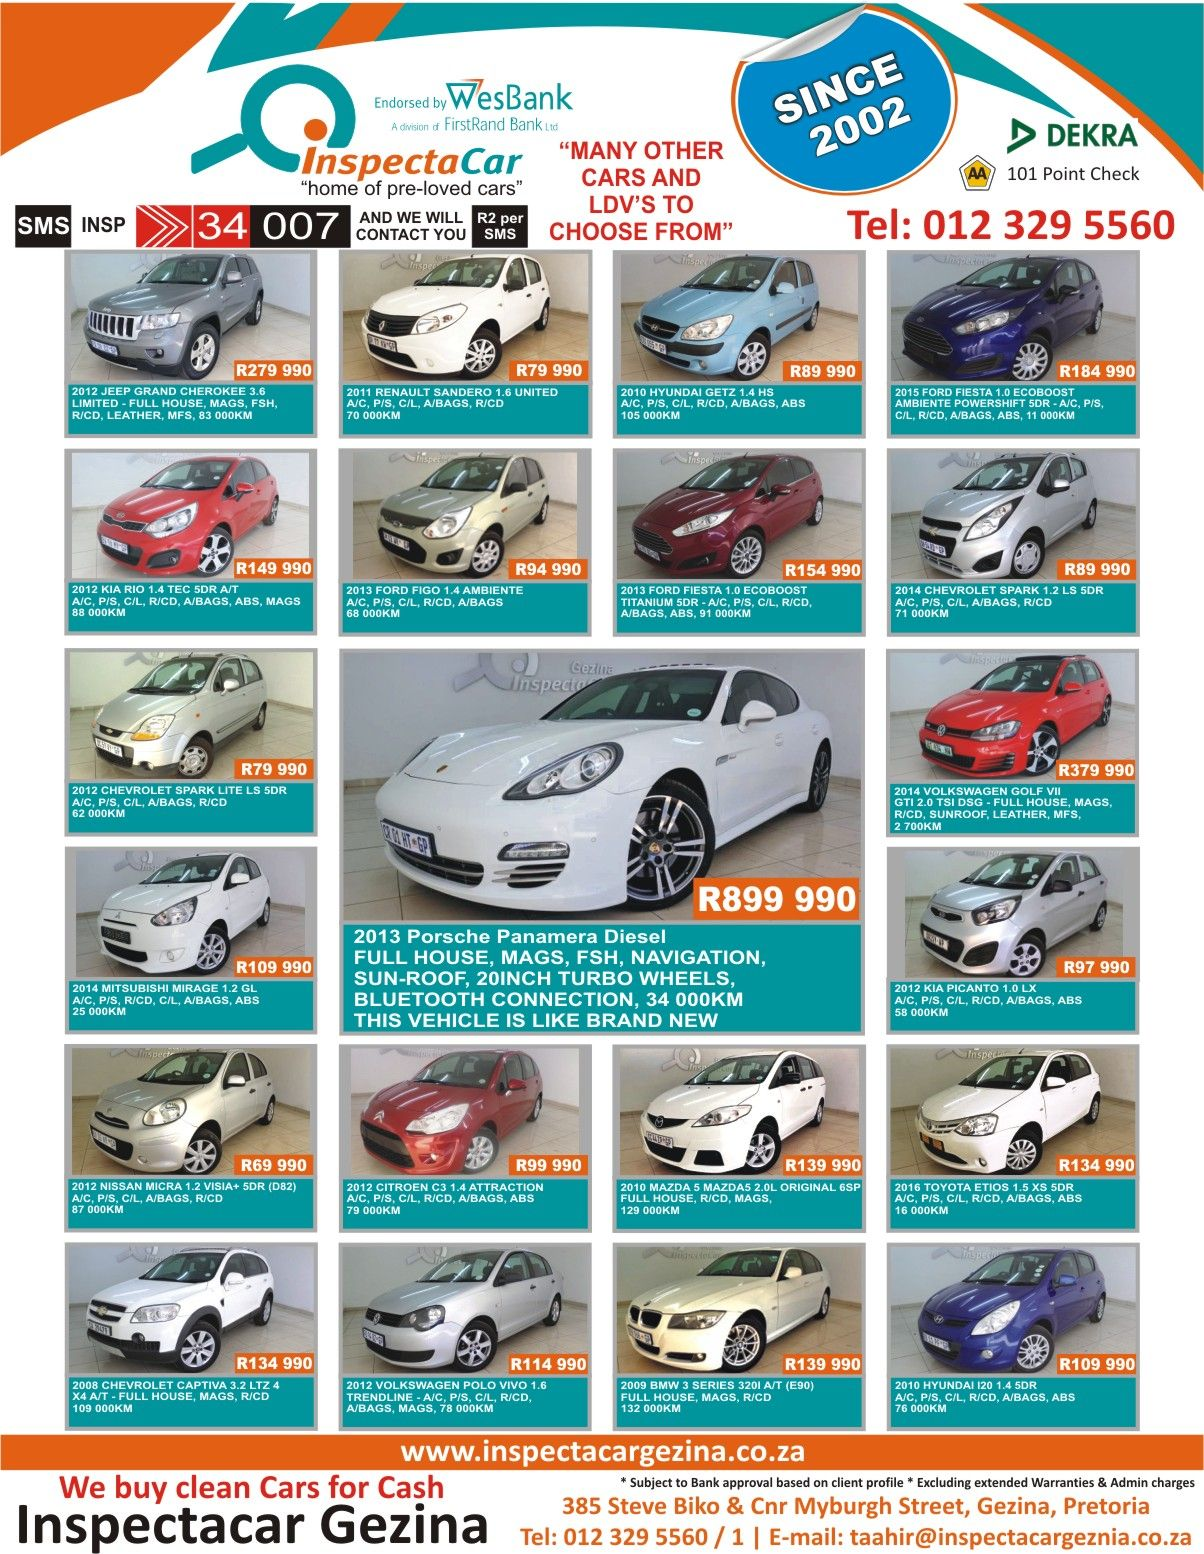 We #Buy Clean #Cars For Cash @ Inspectacar Gezina Many Other Cars ...